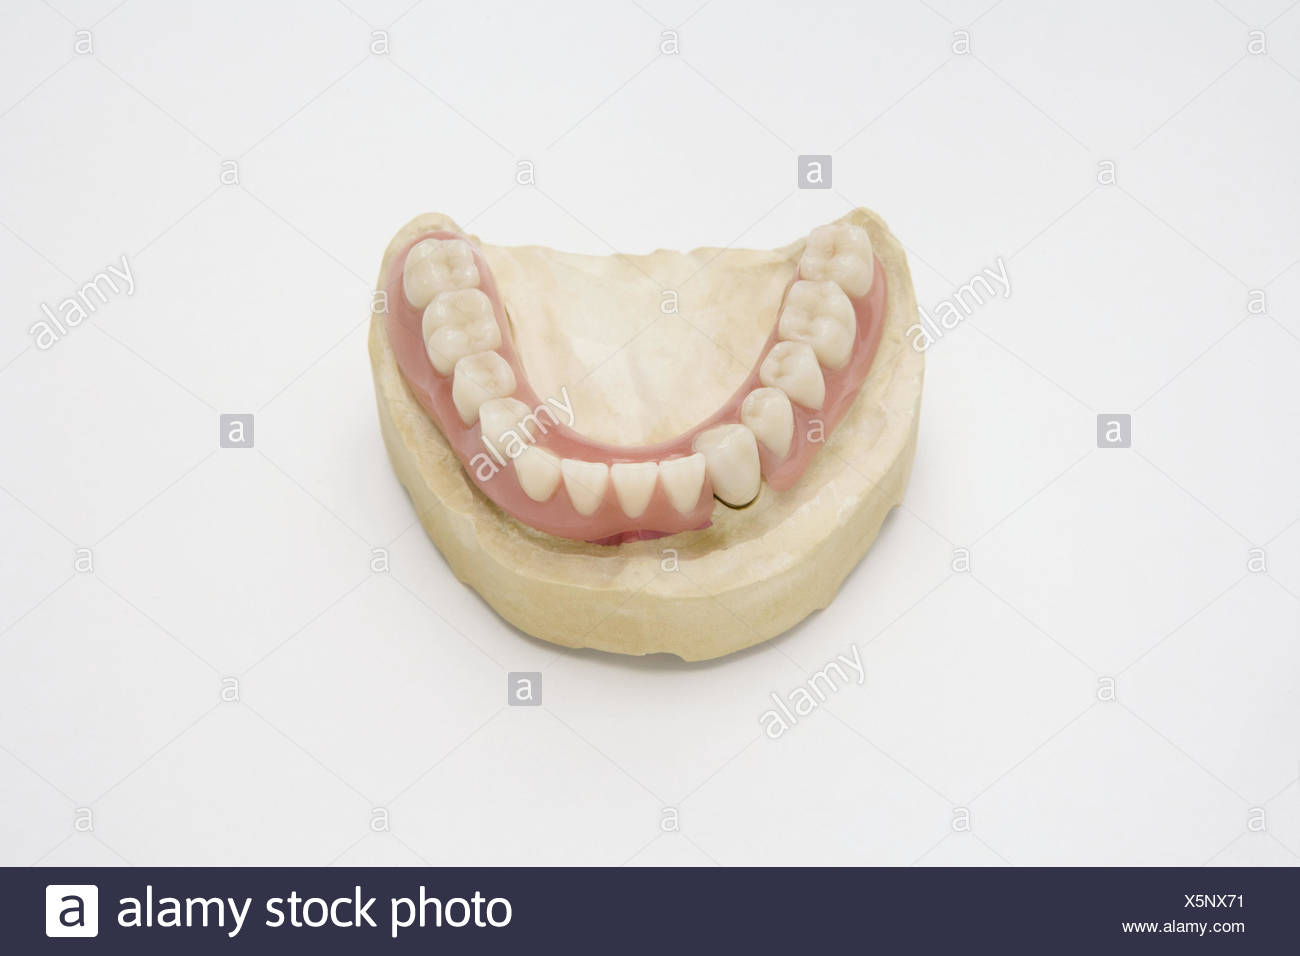 Denture, lower jaw, gypsum model, set dentures, cog laboratory, prosthesis, bite, cogs, cog precaution, dentistry, health, health policy, product photography, - Stock Image